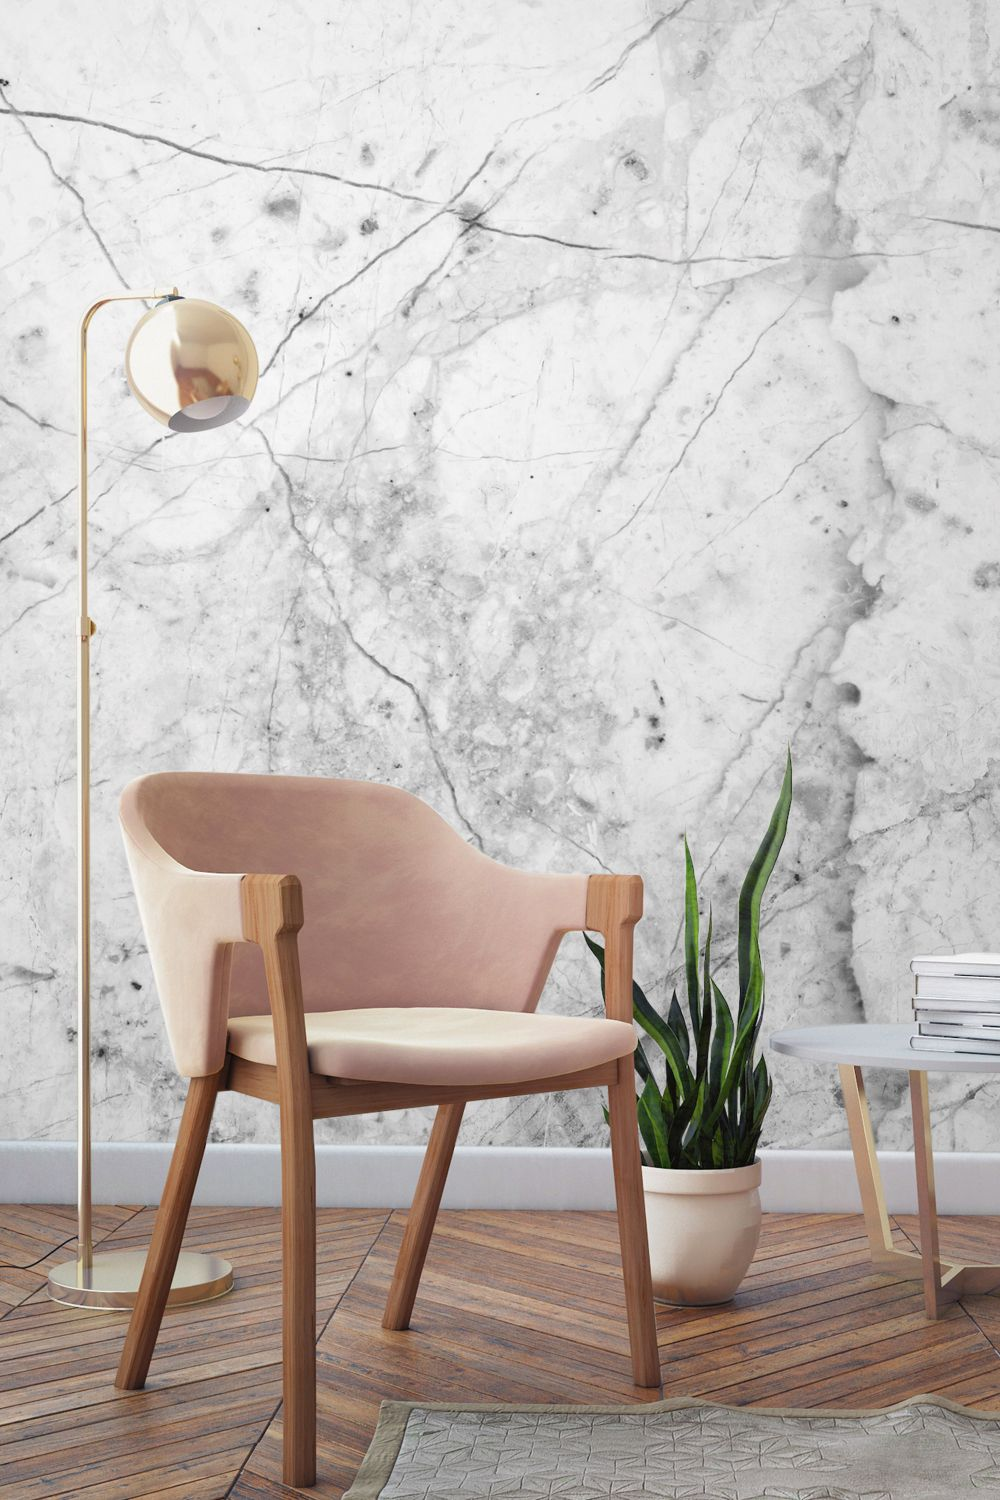 Dusty Pink, Marble And Copper   This Yearu0027s Hottest Combo. Recreate The  Look With This Beautiful Faux Marble Mural. This Timeless Design Echoes The  ...